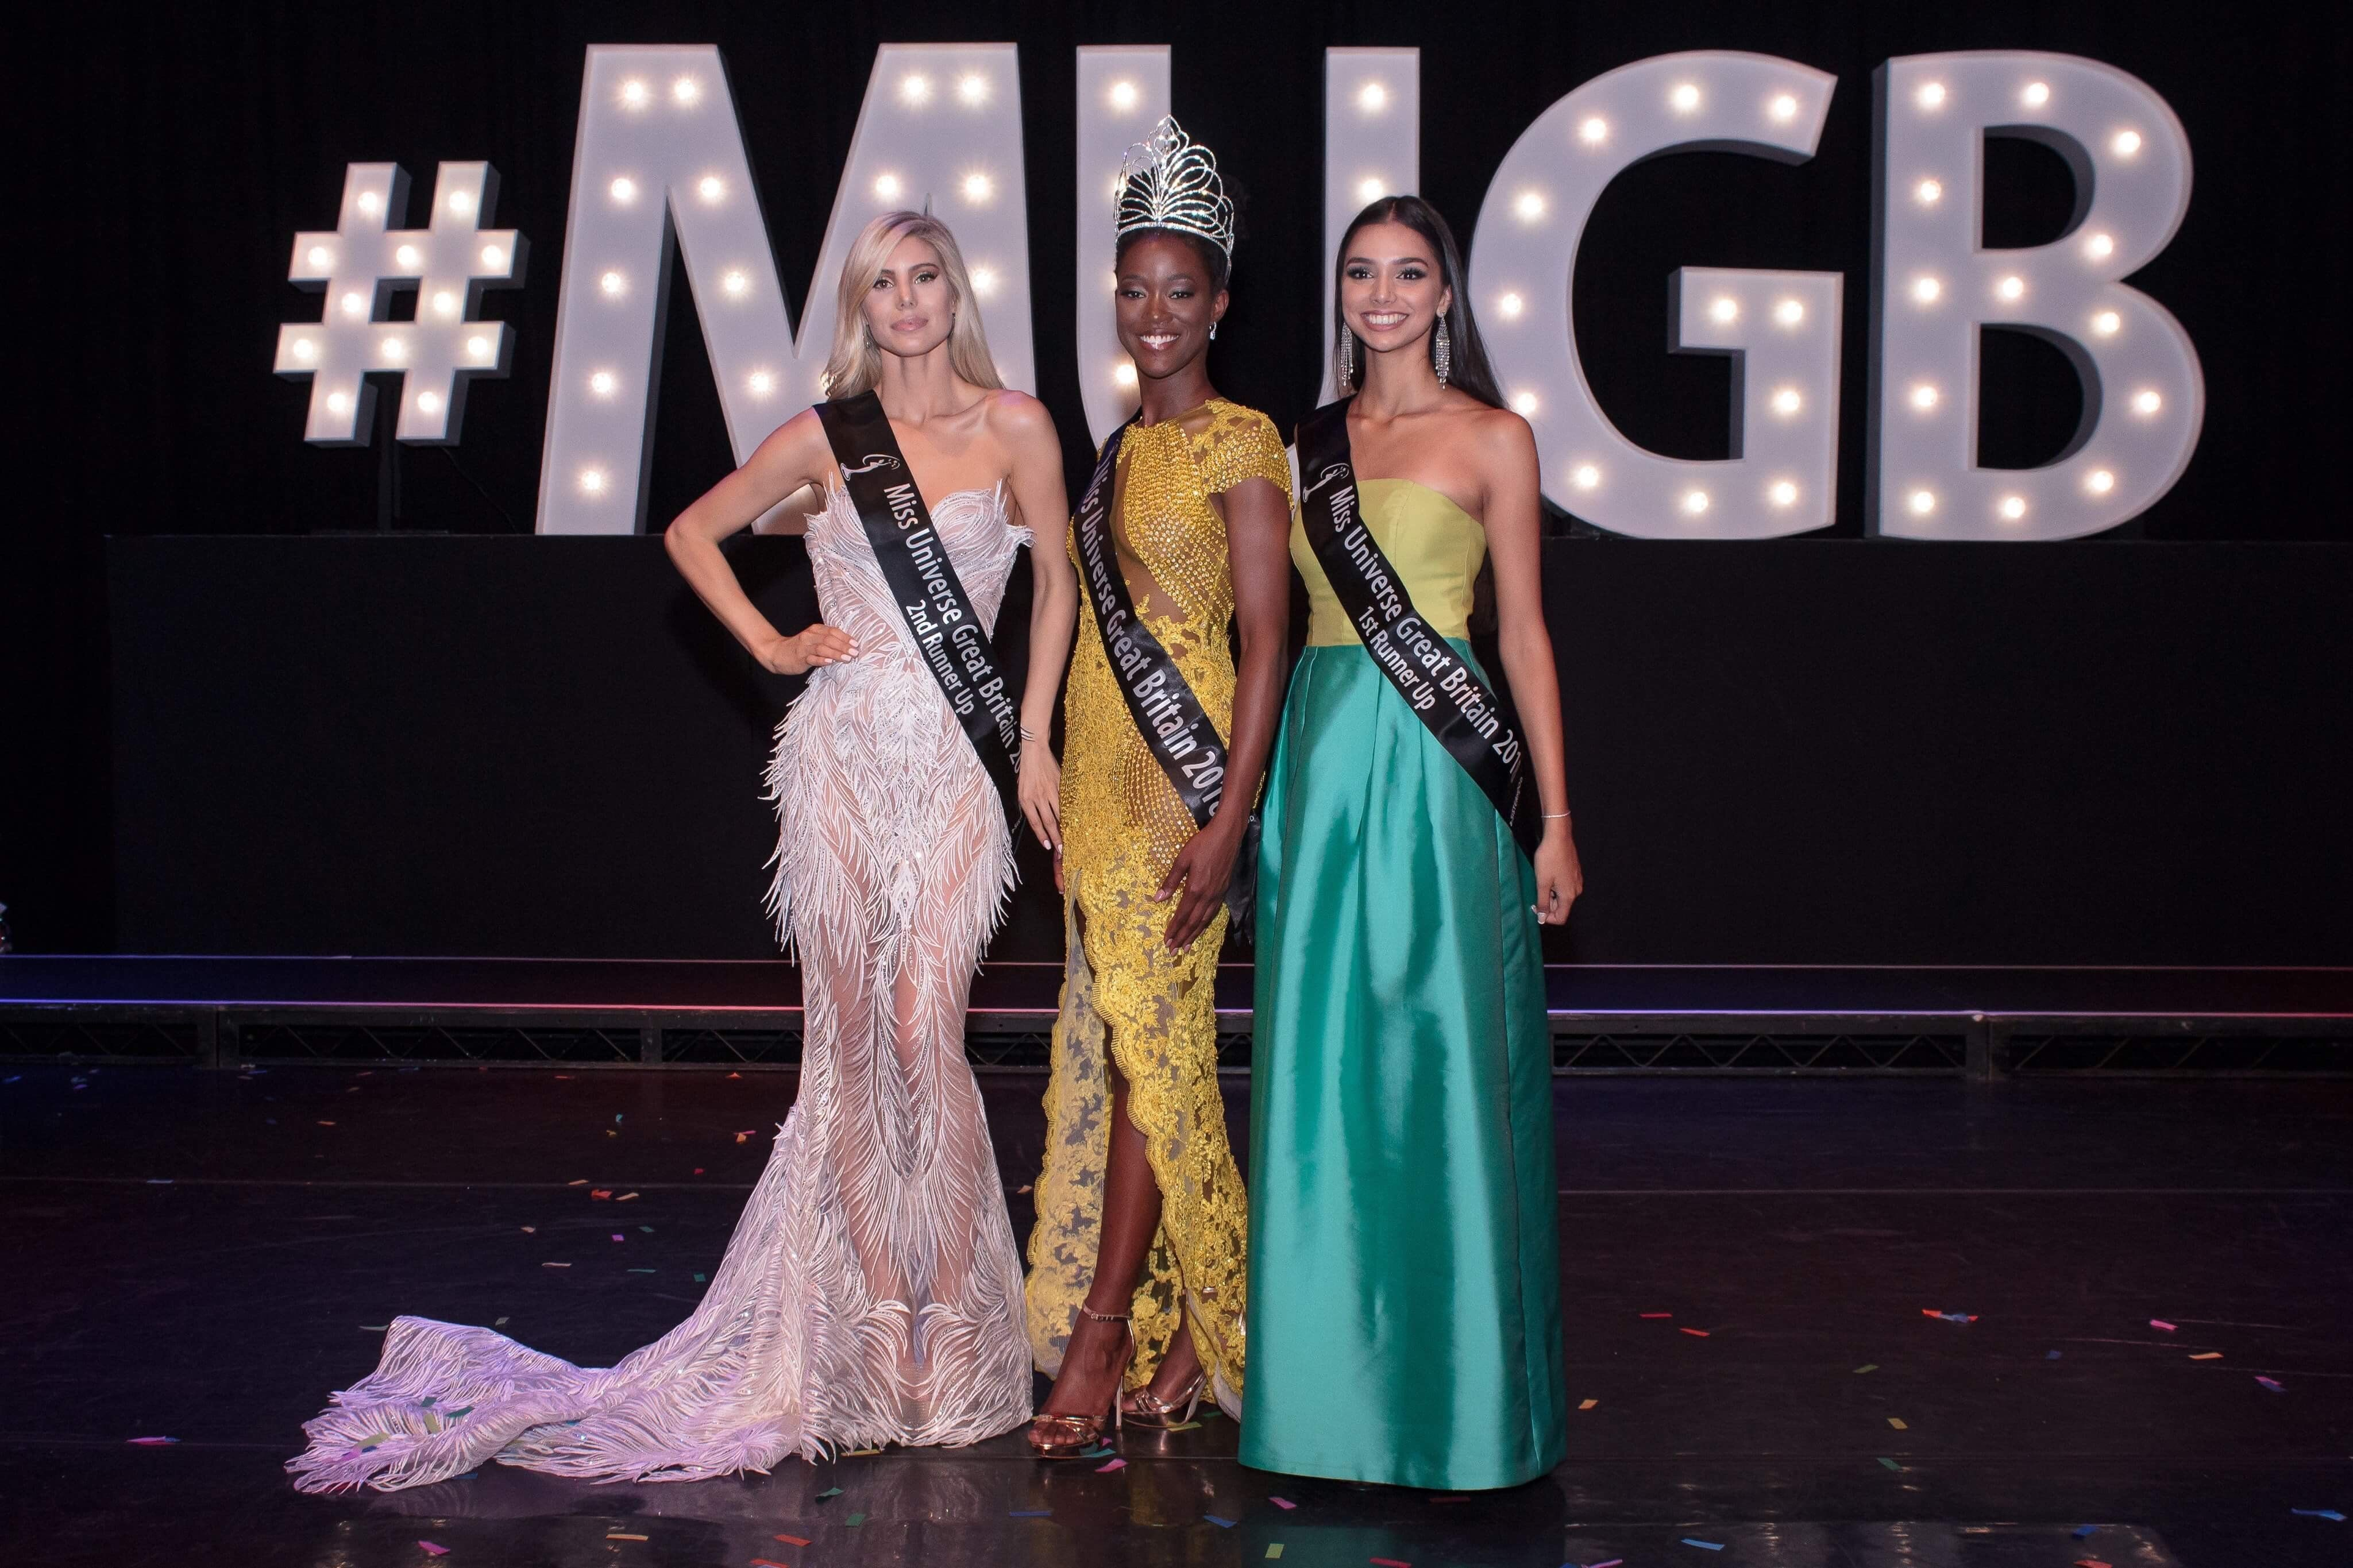 Dee-Ann Kentish-Rogers [center) alongside the runners-up after the Miss Universe Great Britain competition.